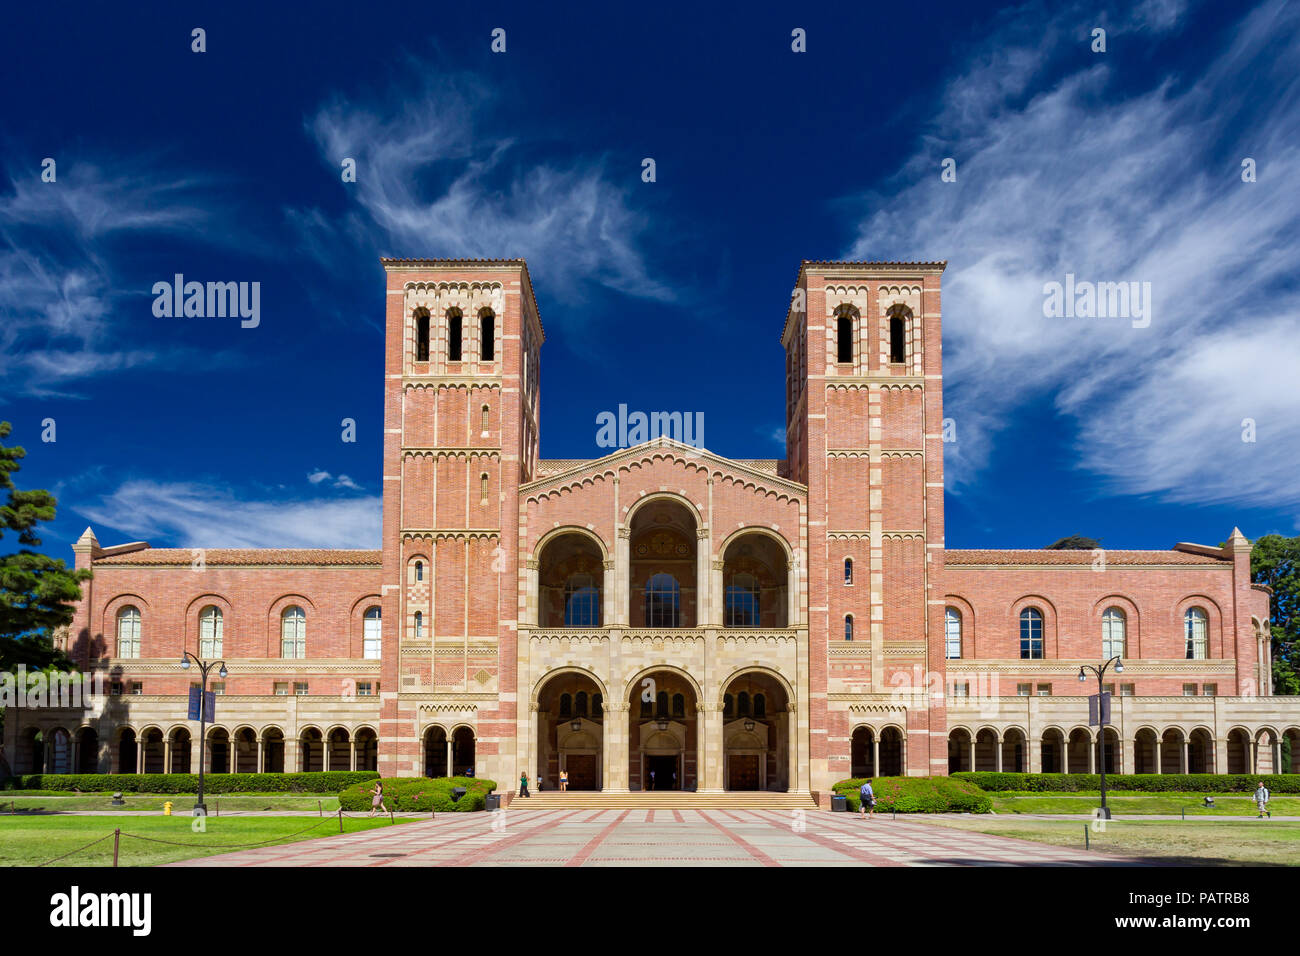 LOS ANGELES, CA/USA - OCTOBER 4, 2014: Royce Hall on the campus of UCLA. - Stock Image